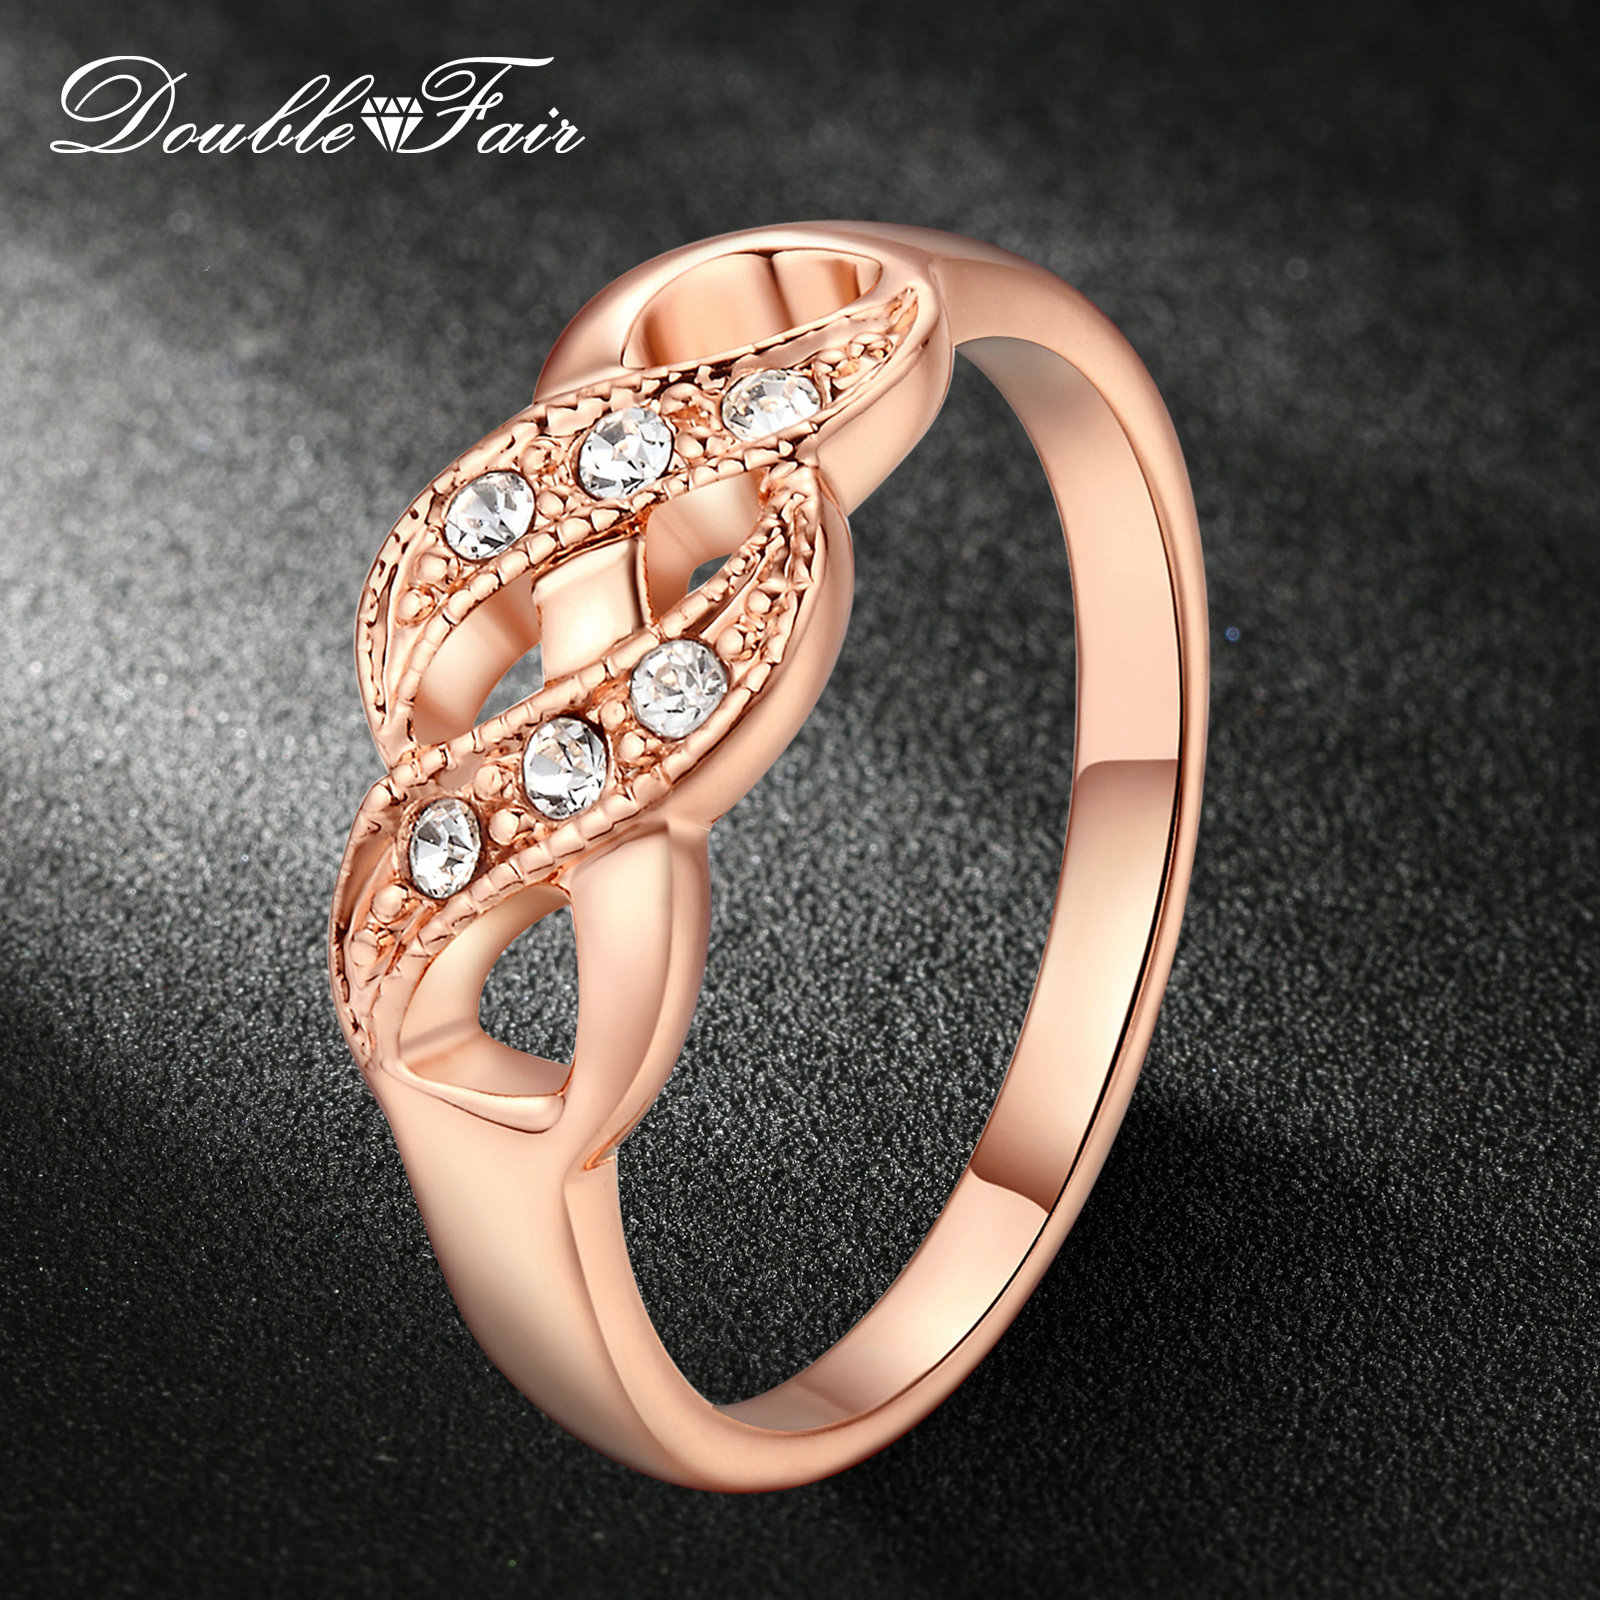 Double Fair Cubic Zirconia Infinity Rings For Women Rose Gold Color Fashion Wedding/Engagement Jewelry Women's Ring Gift DFR334